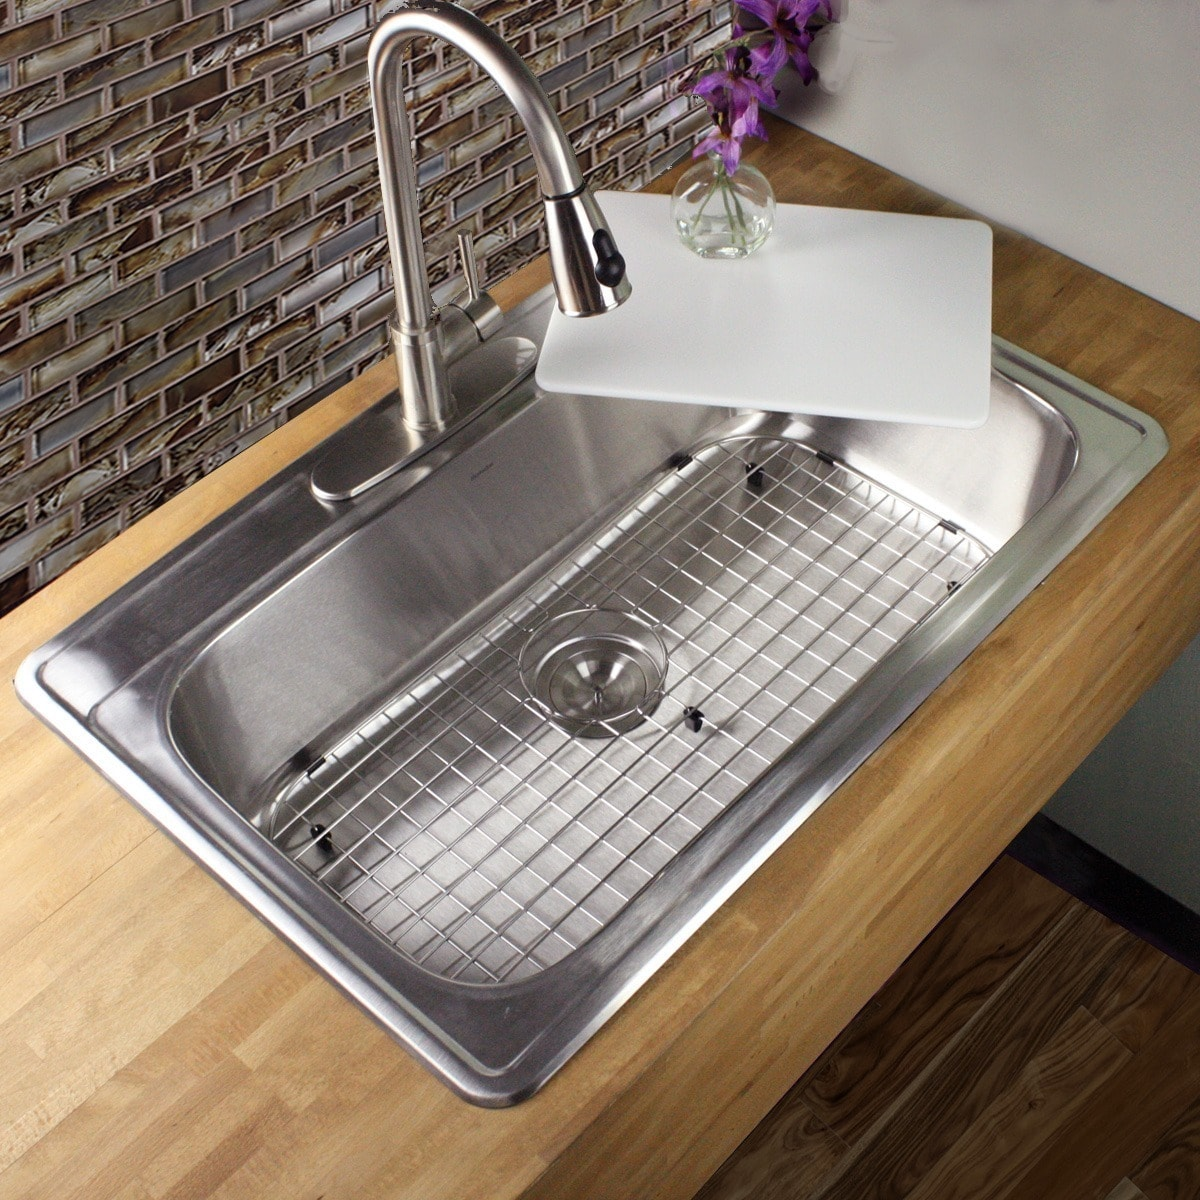 33 Inch 18 Gauge Stainless Steel Drop In Single Bowl Kitchen Sink With Cutting Board Drain And Grid Silver